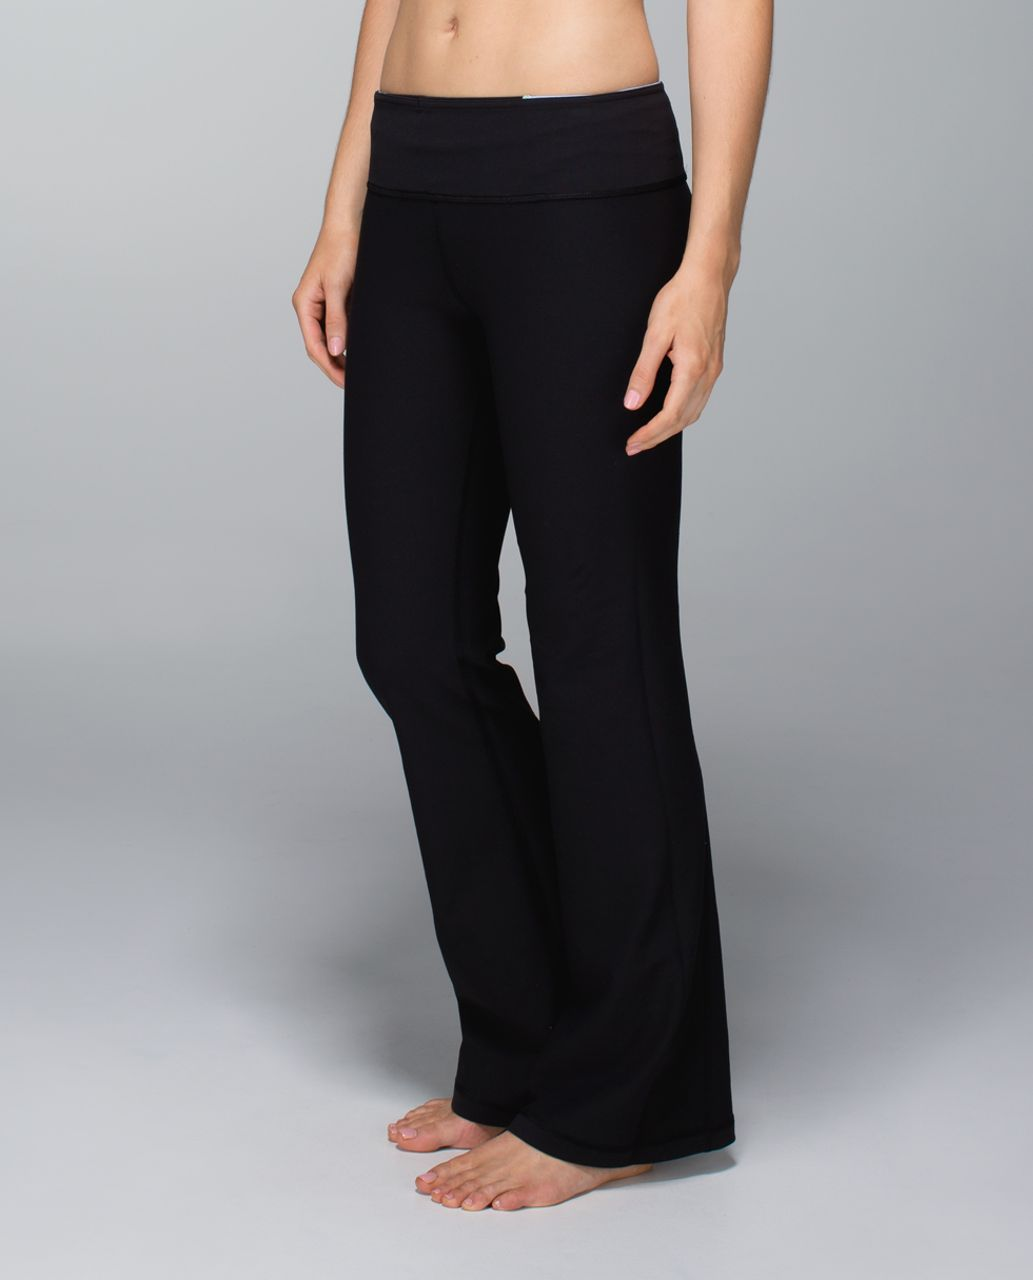 Lululemon Groove Pant (Regular) *Full-On Luon - Black / Quilt Winter 13-17